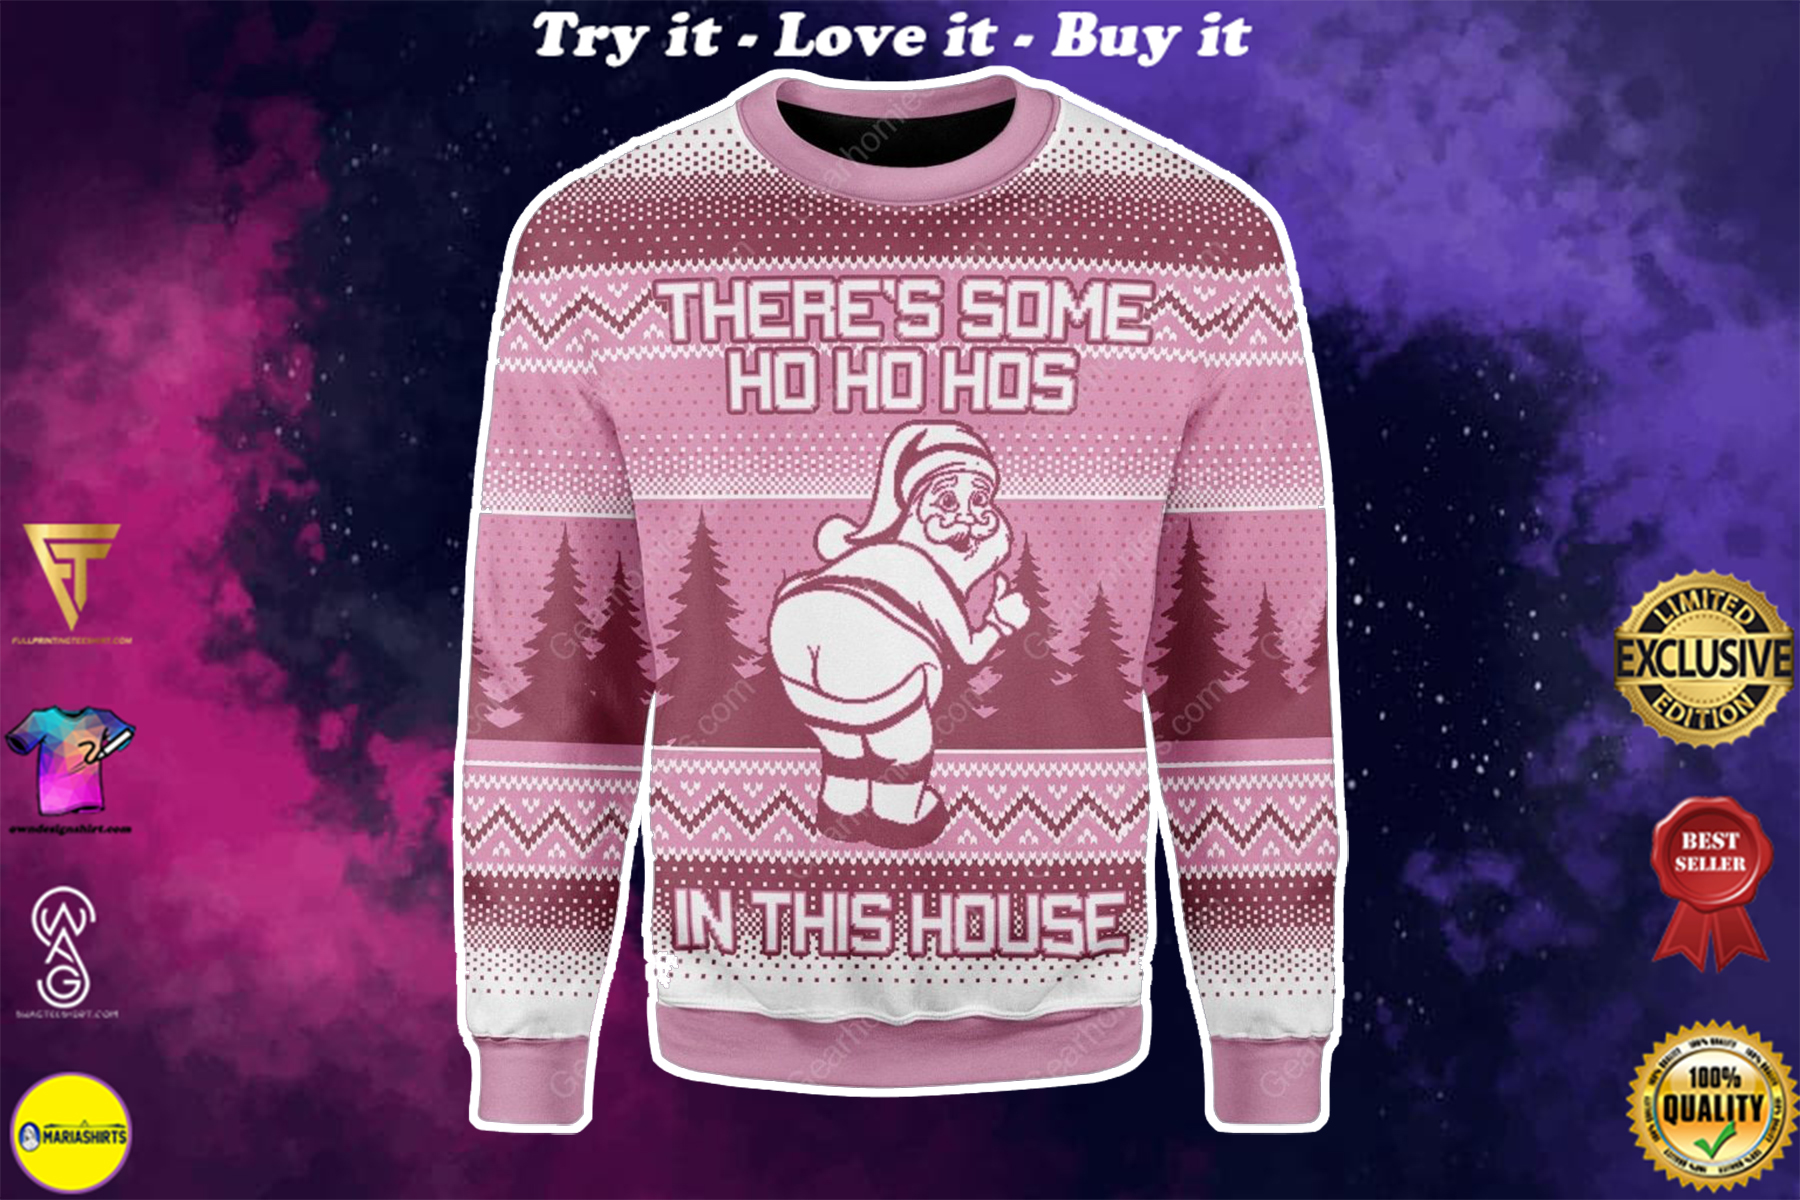 [special edition] theres some ho ho hos in this house santa claus all over printed ugly christmas sweater - maria